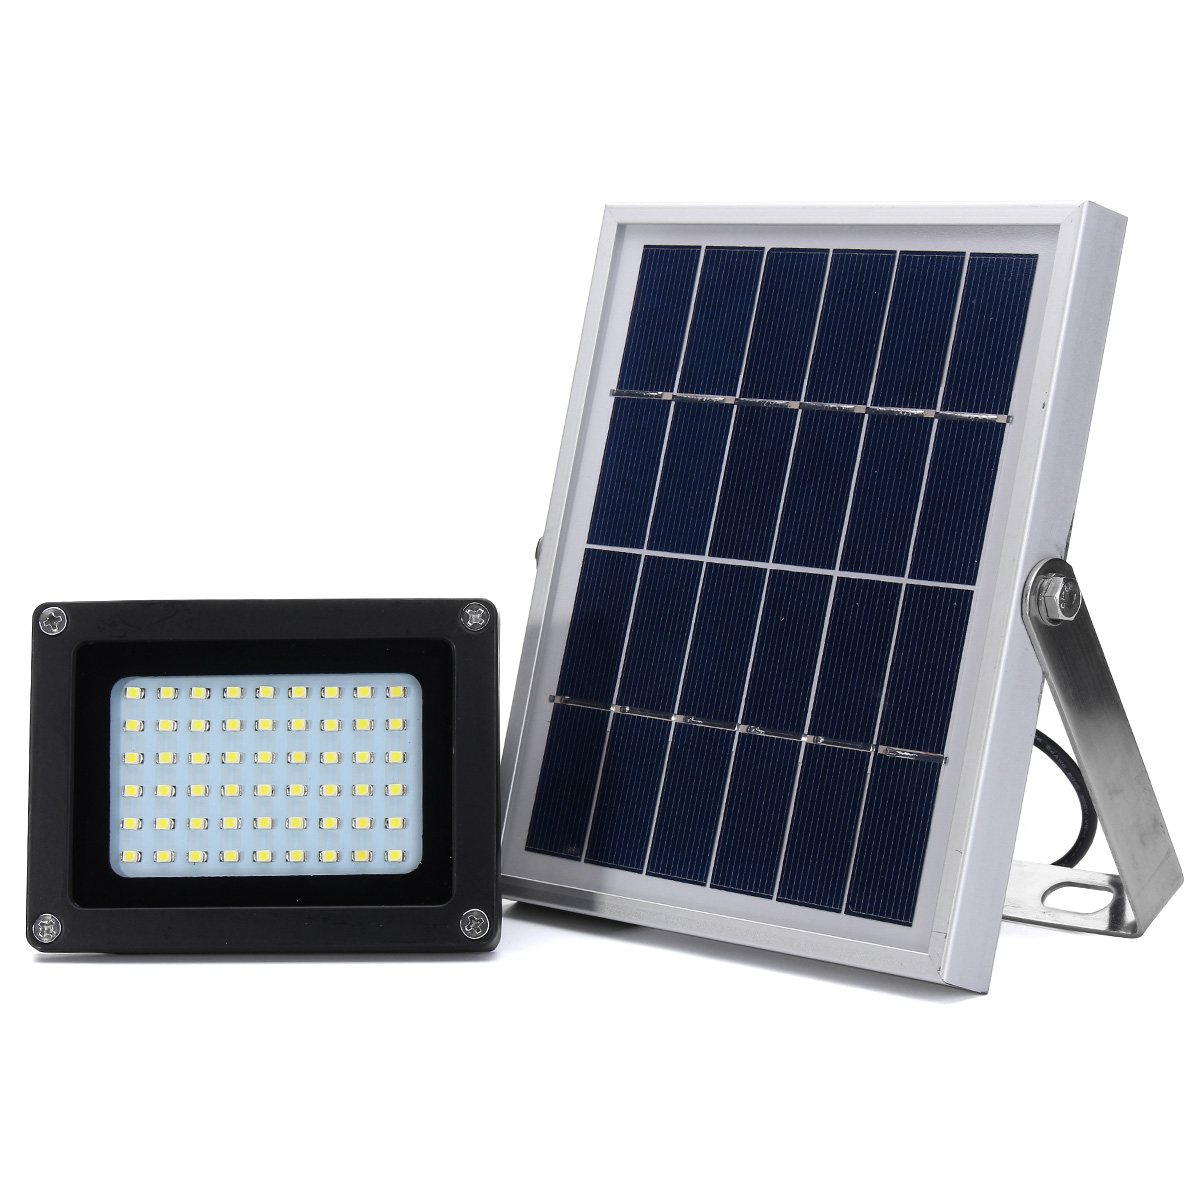 Manual/Light Control Solar Powered 54 LED Solar Light 3528 smd Dusk-to-Dawn Sensor Waterproof Outdoor Security LED Flood Light цена